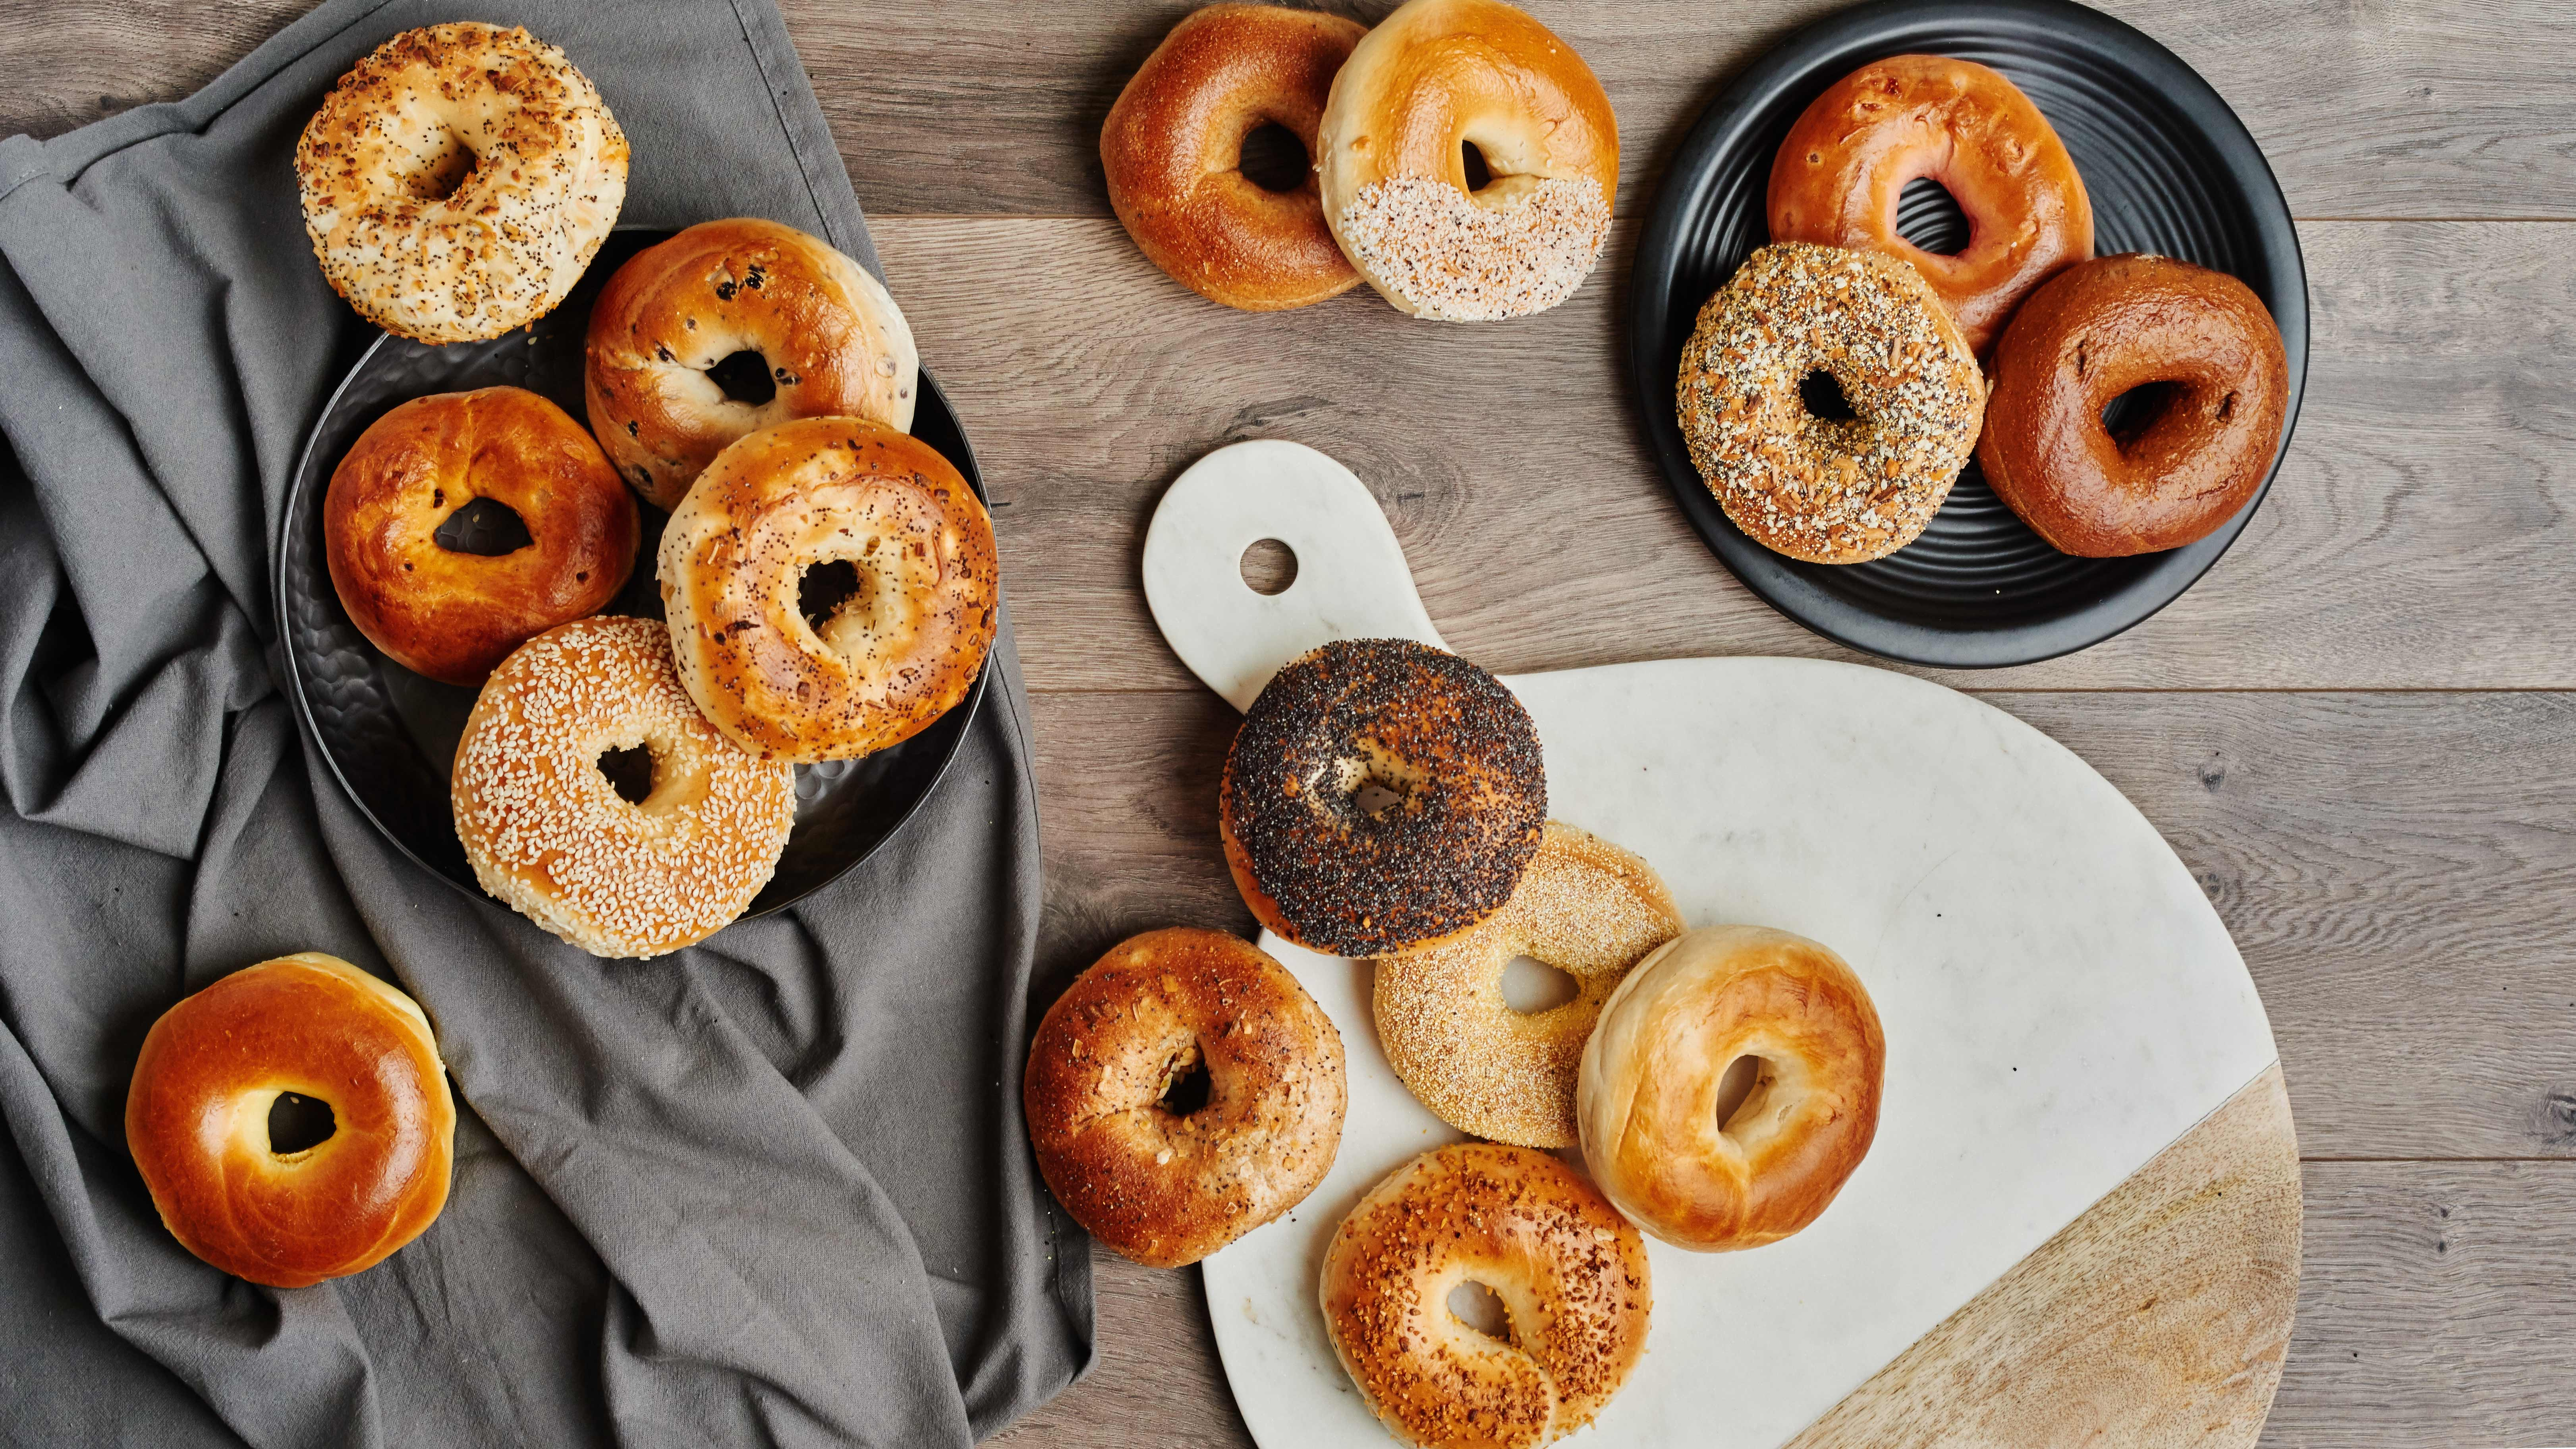 Western Bagel currently offers about 30 varieties of bagels